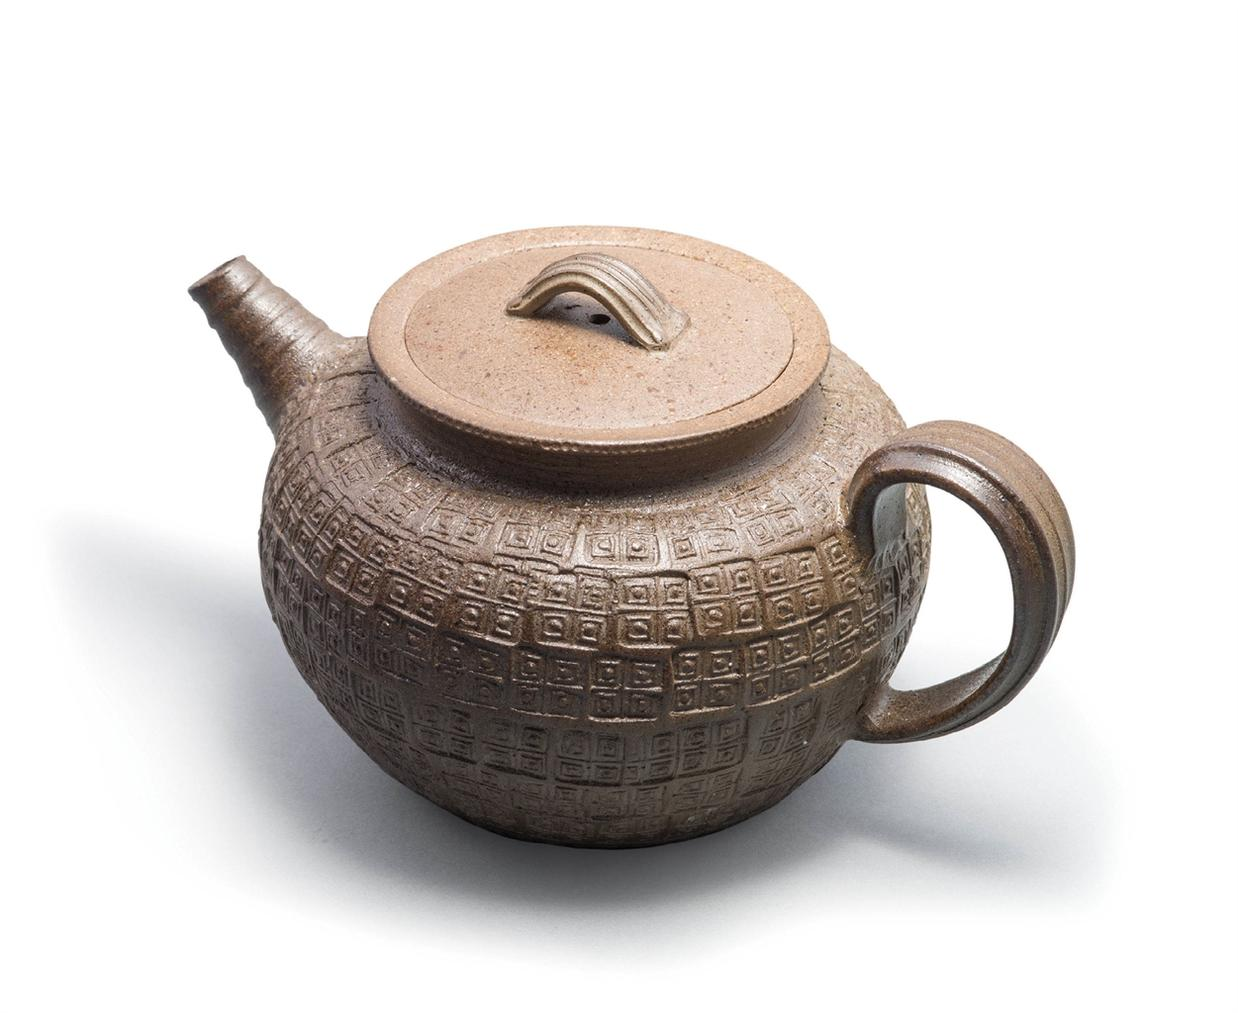 Gao Zhenyu - A 'Warring States' Embossed Yixing Clay Teapot-